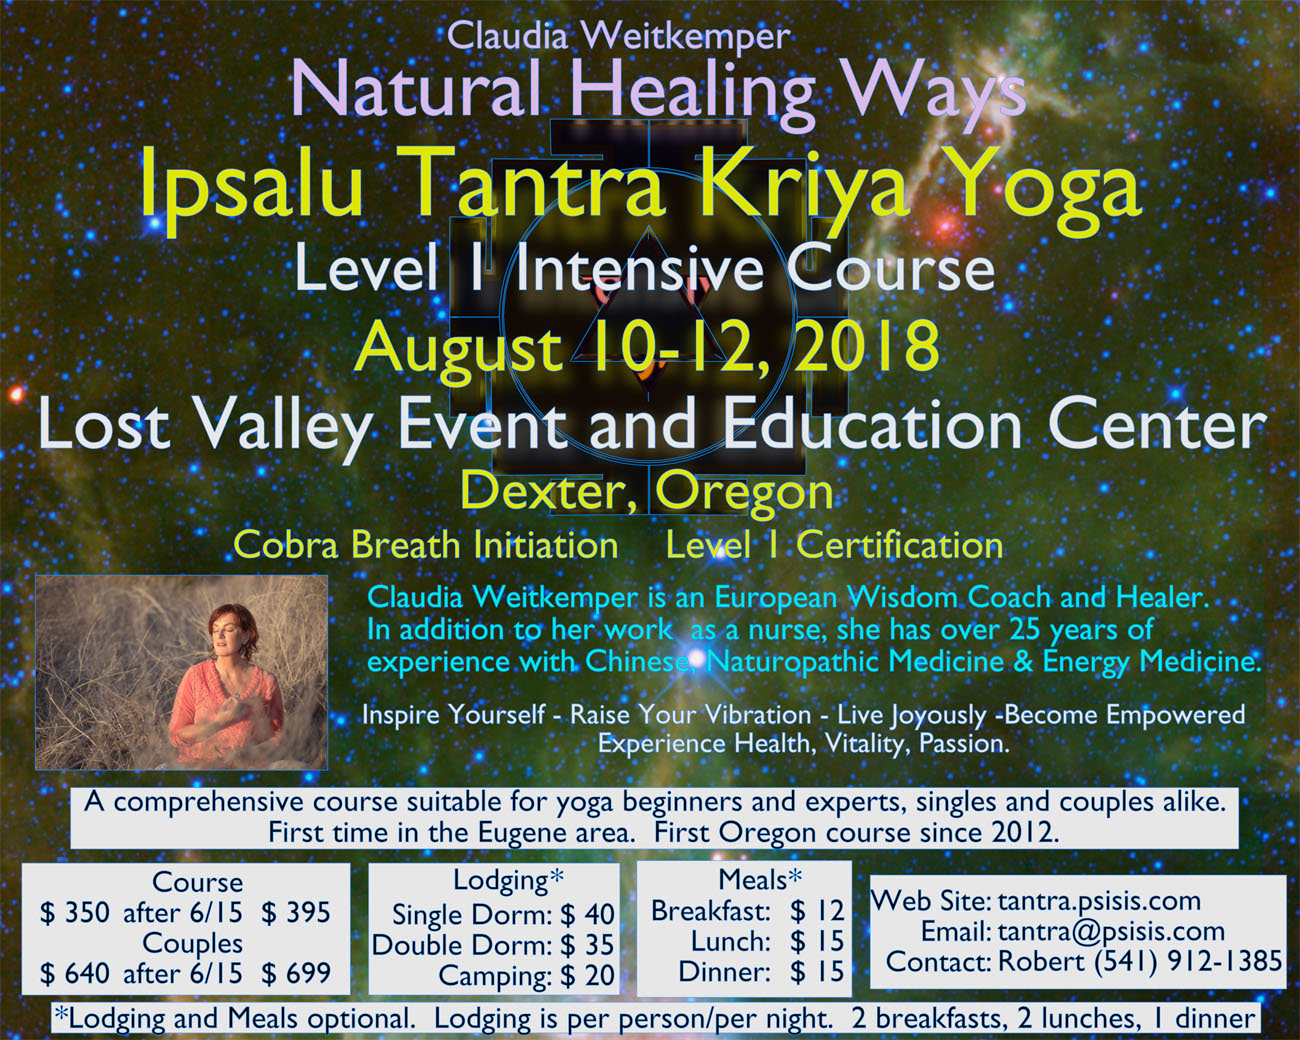 Ipsalu Tantra Kriya Yoga - Level 1 Intensive Course @ Eugene | Oregon | United States